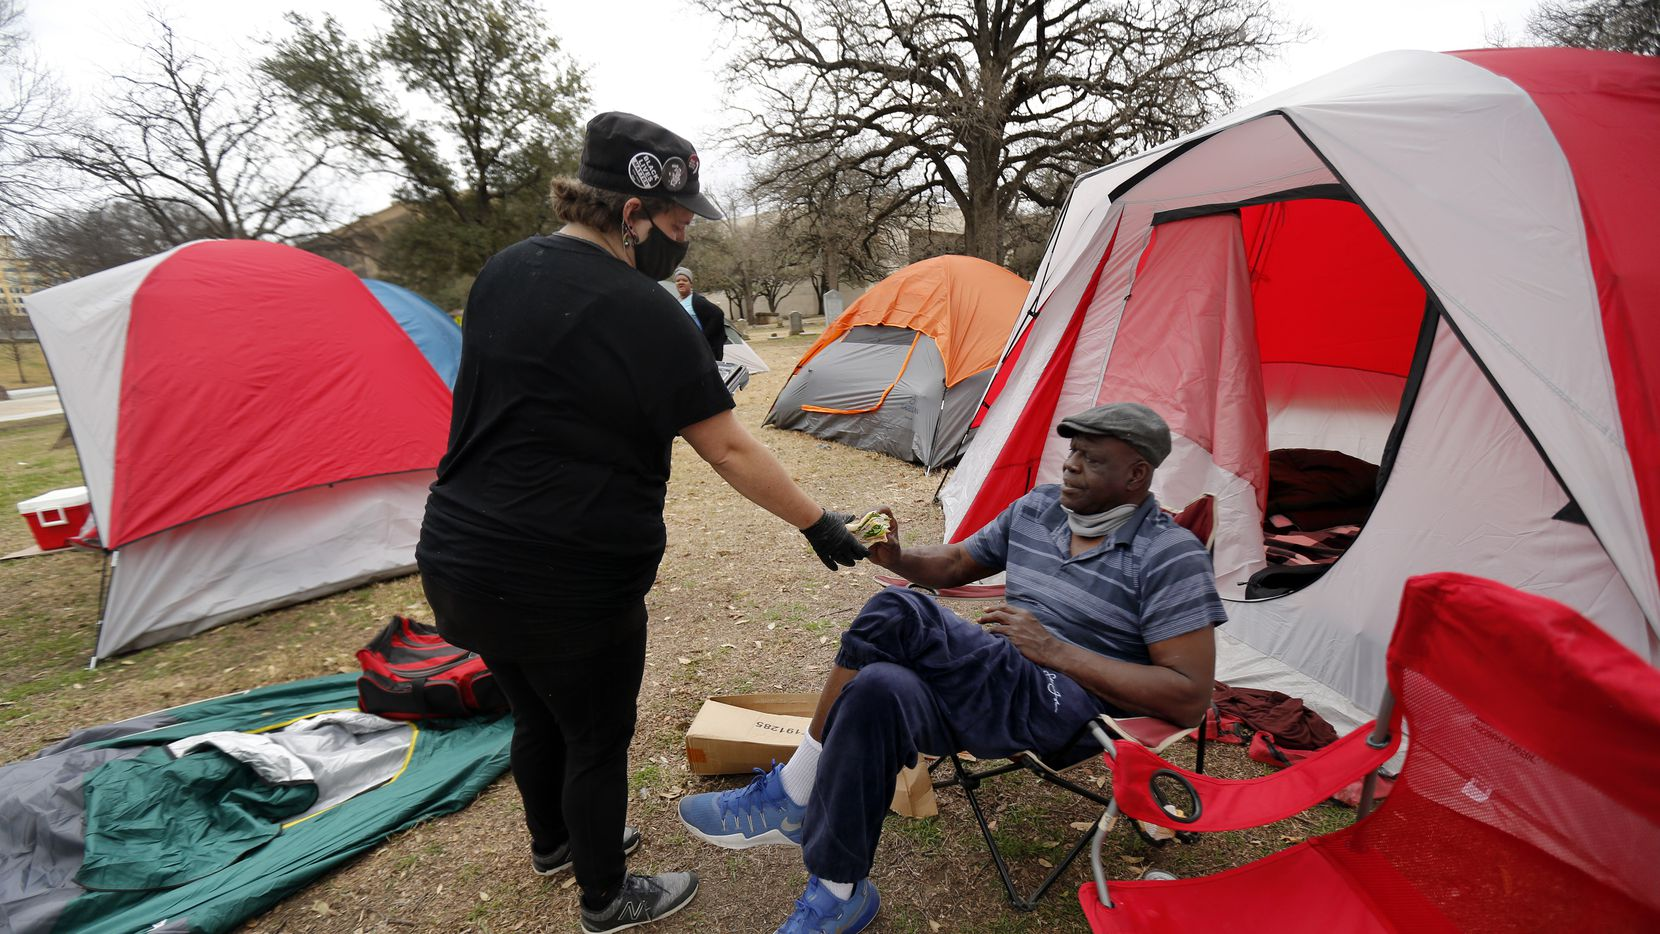 The East Dallas Response Team will create new programs such as check-ins with residents and work to address the mental health needs of people experiencing homelessness.